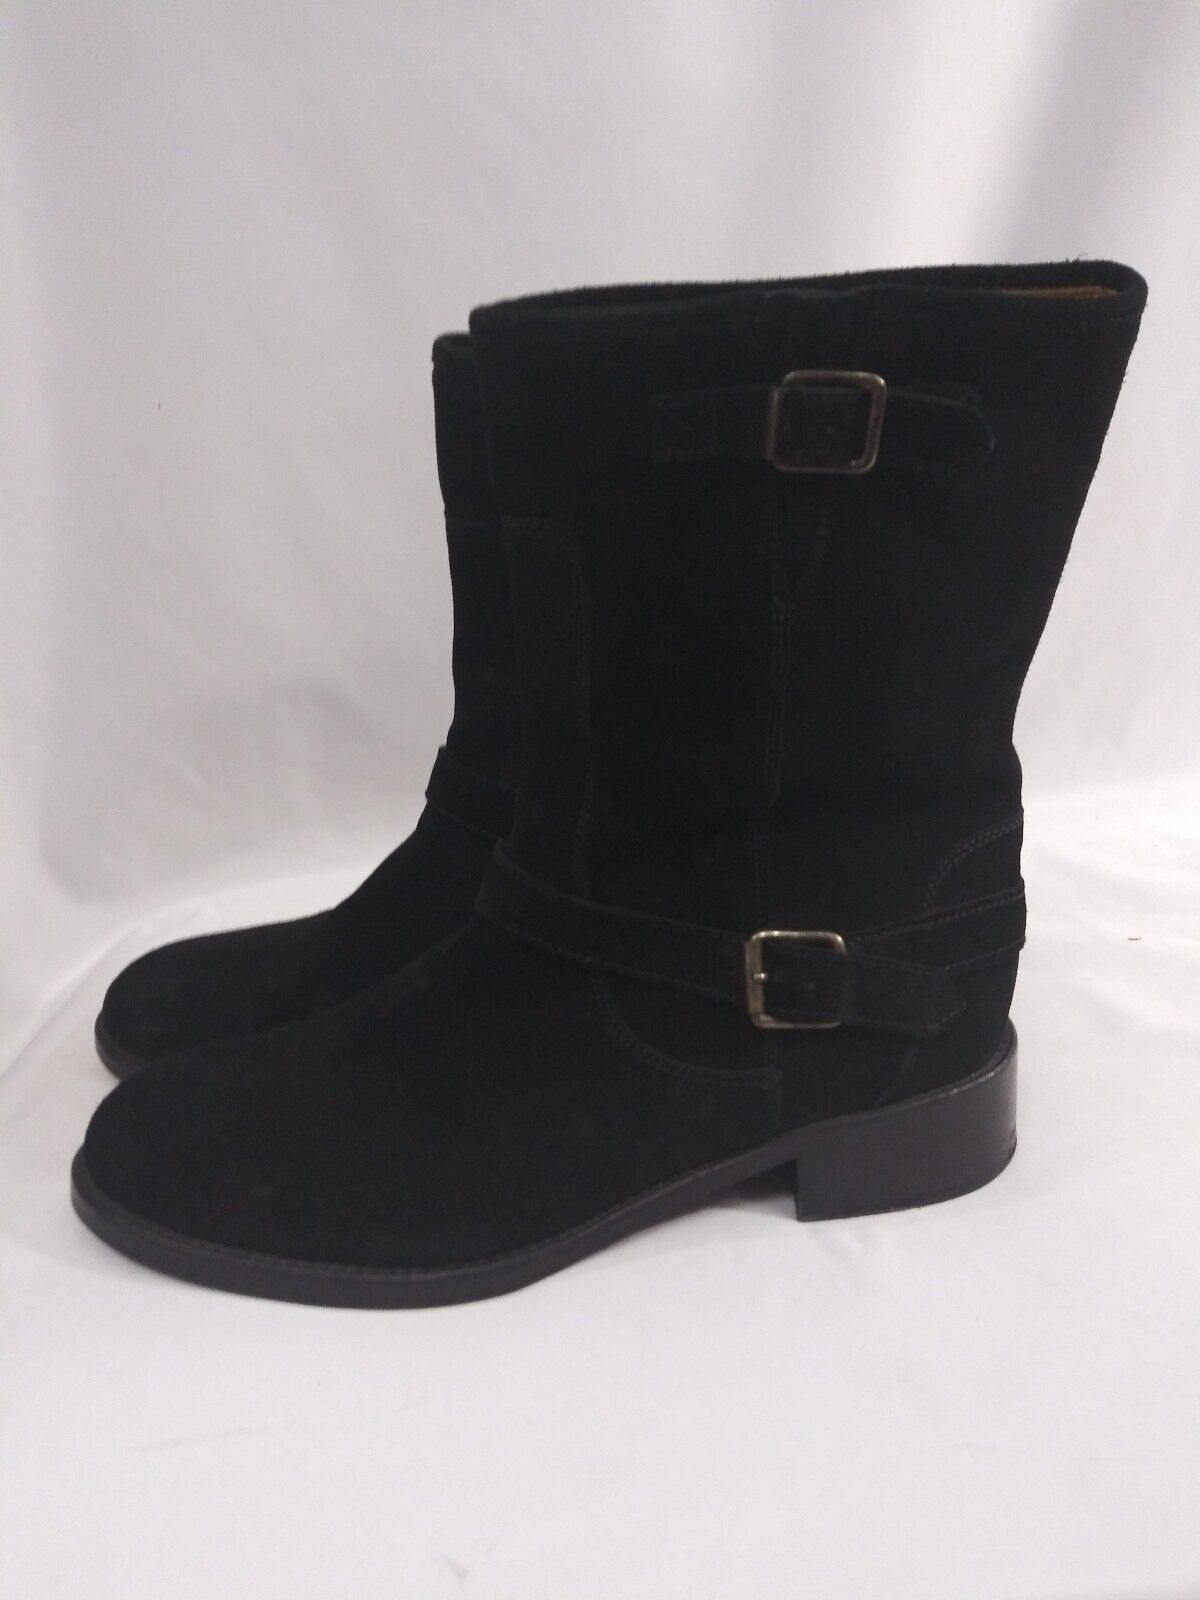 10022-schuhe Saks Fifth Avenue  Suede Leather Buckle Stiefel  39.5